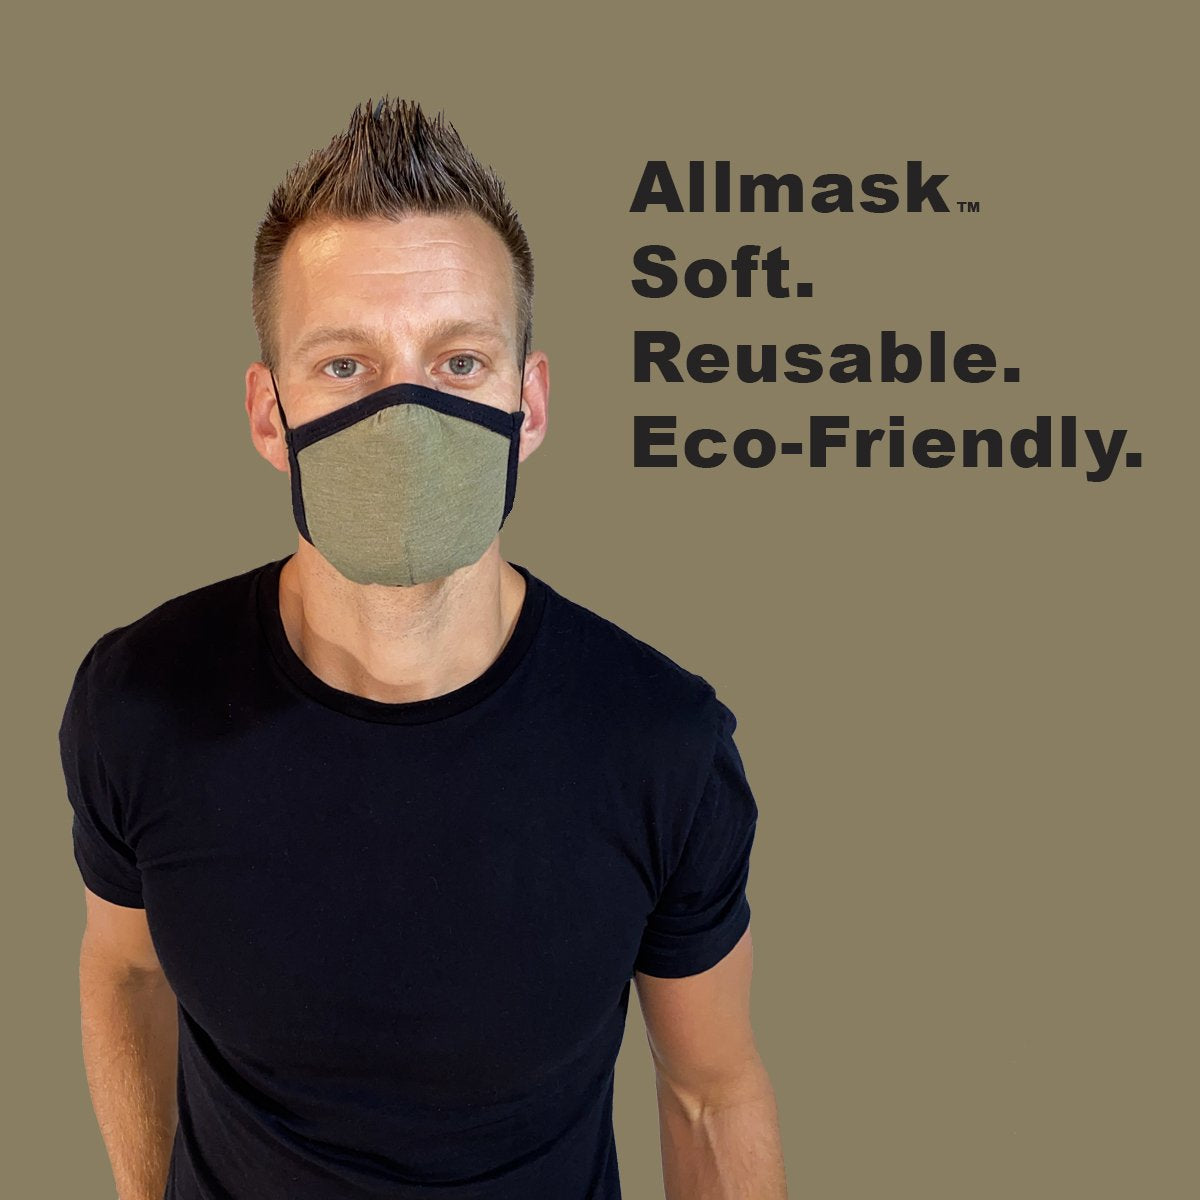 Allmask Premium Protective Face Mask **BUY 2 GET 1 FREE** - Ragged Apparel Screen Printing and Signs - www.nmshirts.com